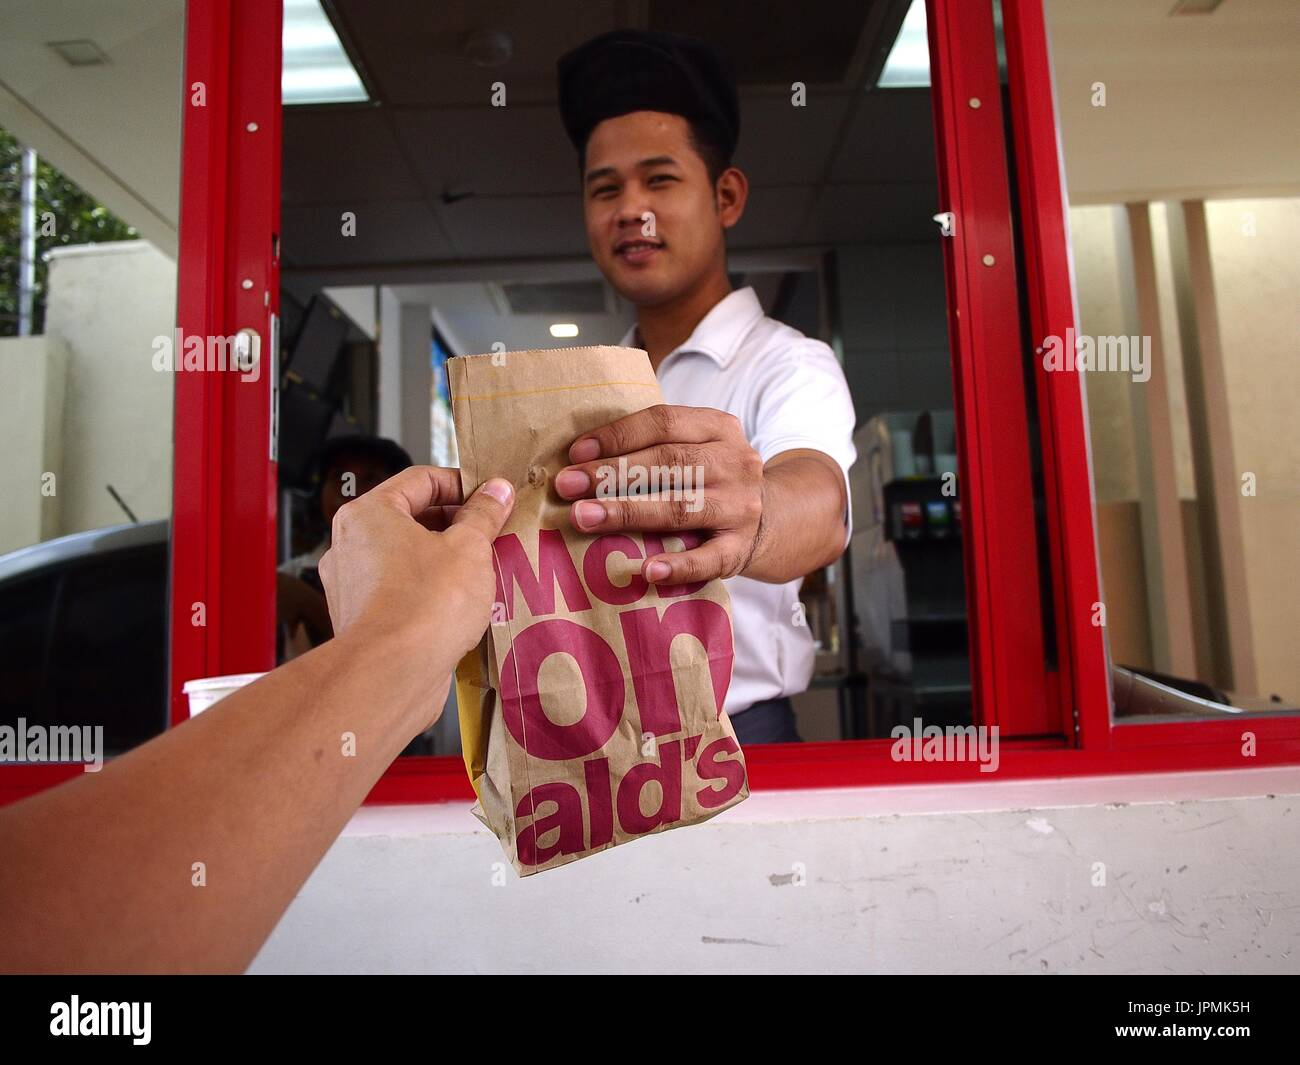 ANGONO, RIZAL, PHILIPPINES - JULY 29, 2017: A fast food chain worker hands over an order of food to a customer at a drive thru counter. - Stock Image